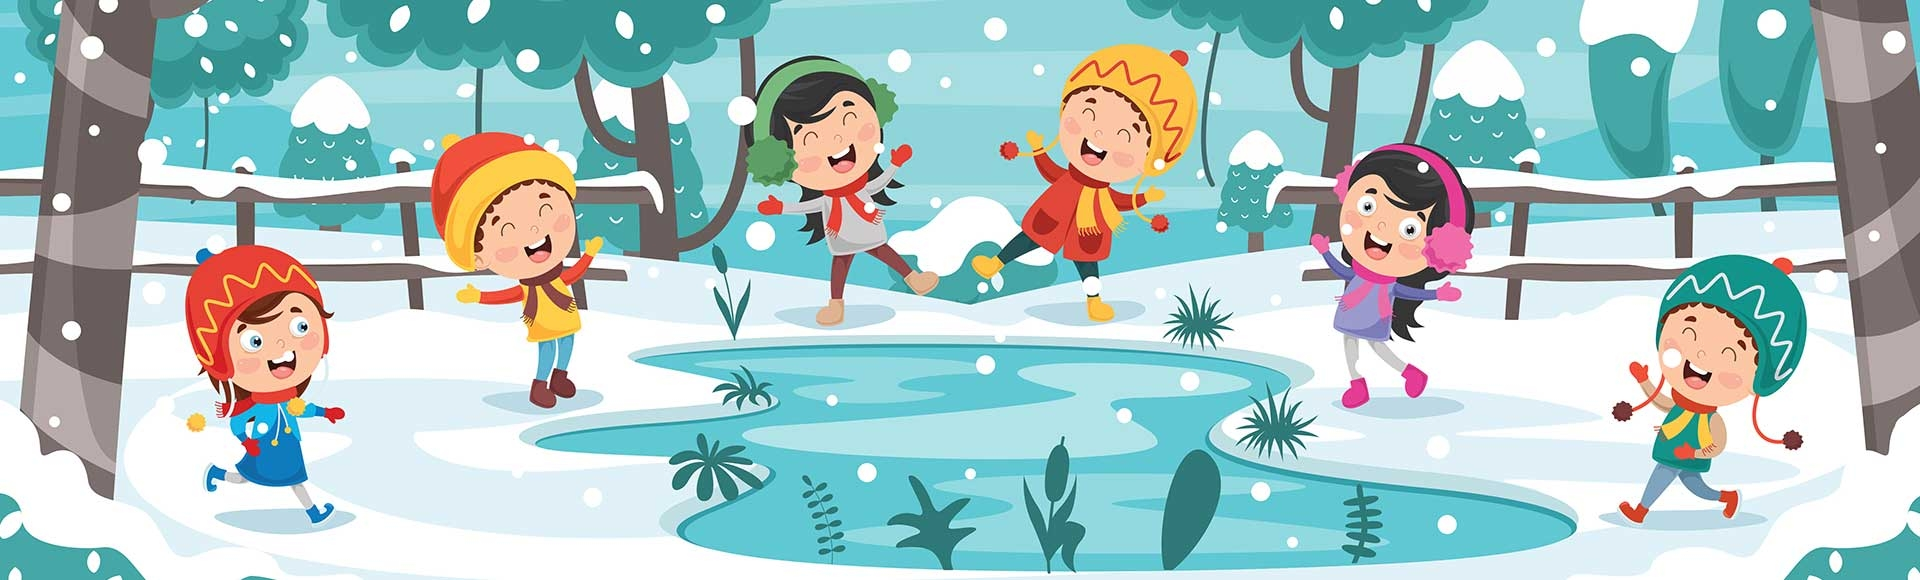 Illustration of kids playing in snow